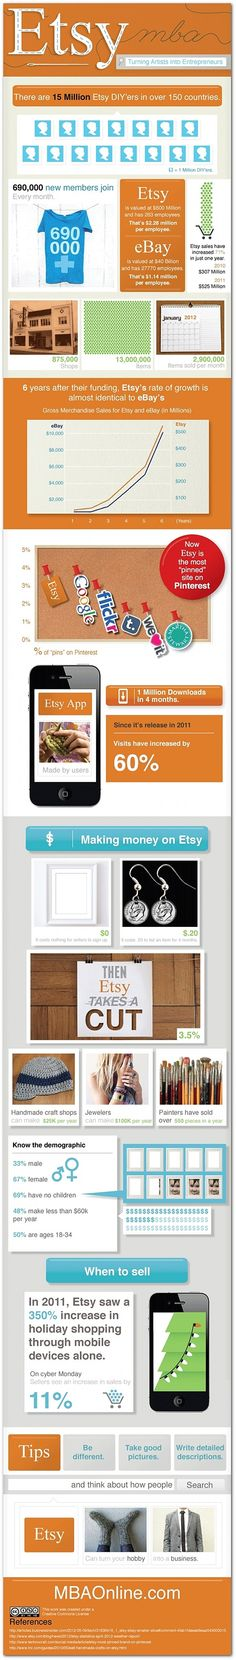 Did you know @Etsy is the msot pinned site? Do you use Etsy? Via @PR Daily #Etsy #Pinterest